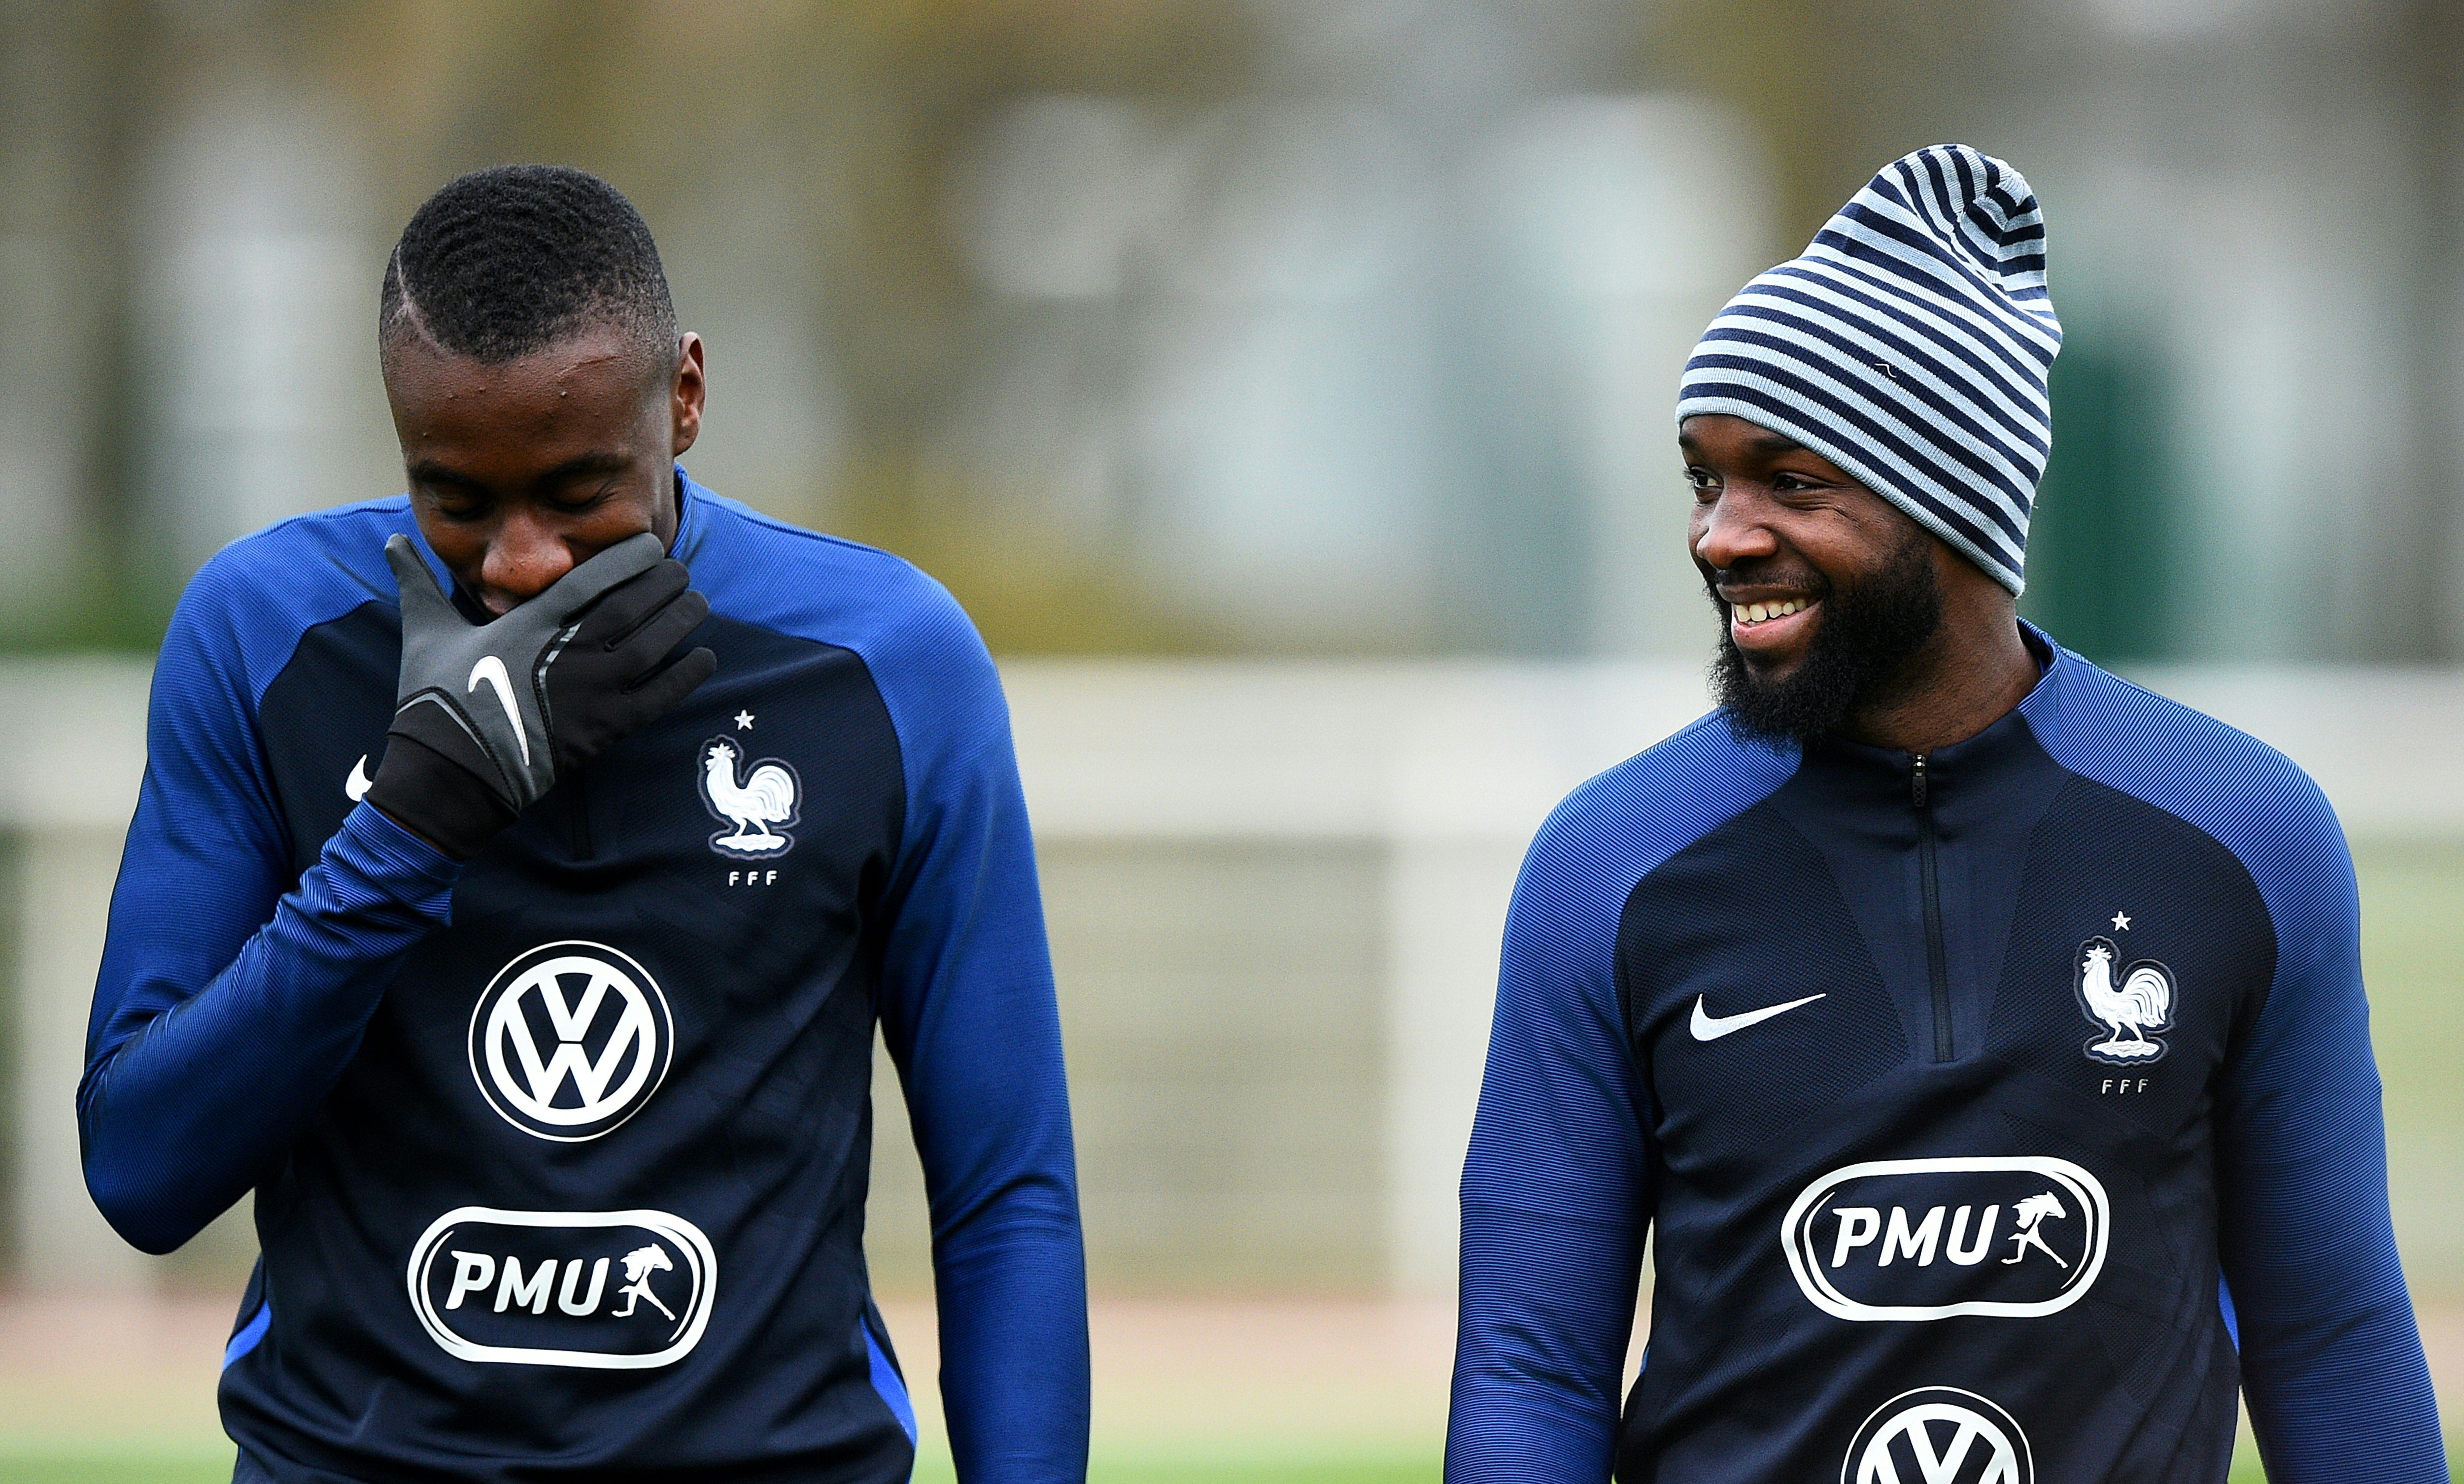 France's midfielder Blaise Matuidi (L) jokes with midfielder Lassana Diarra during a training session in Clairefontaine-en-Yvelines on March 26, 2016 ahead of a friendly football match against Russia.  / AFP / FRANCK FIFE        (Photo credit should read FRANCK FIFE/AFP/Getty Images)